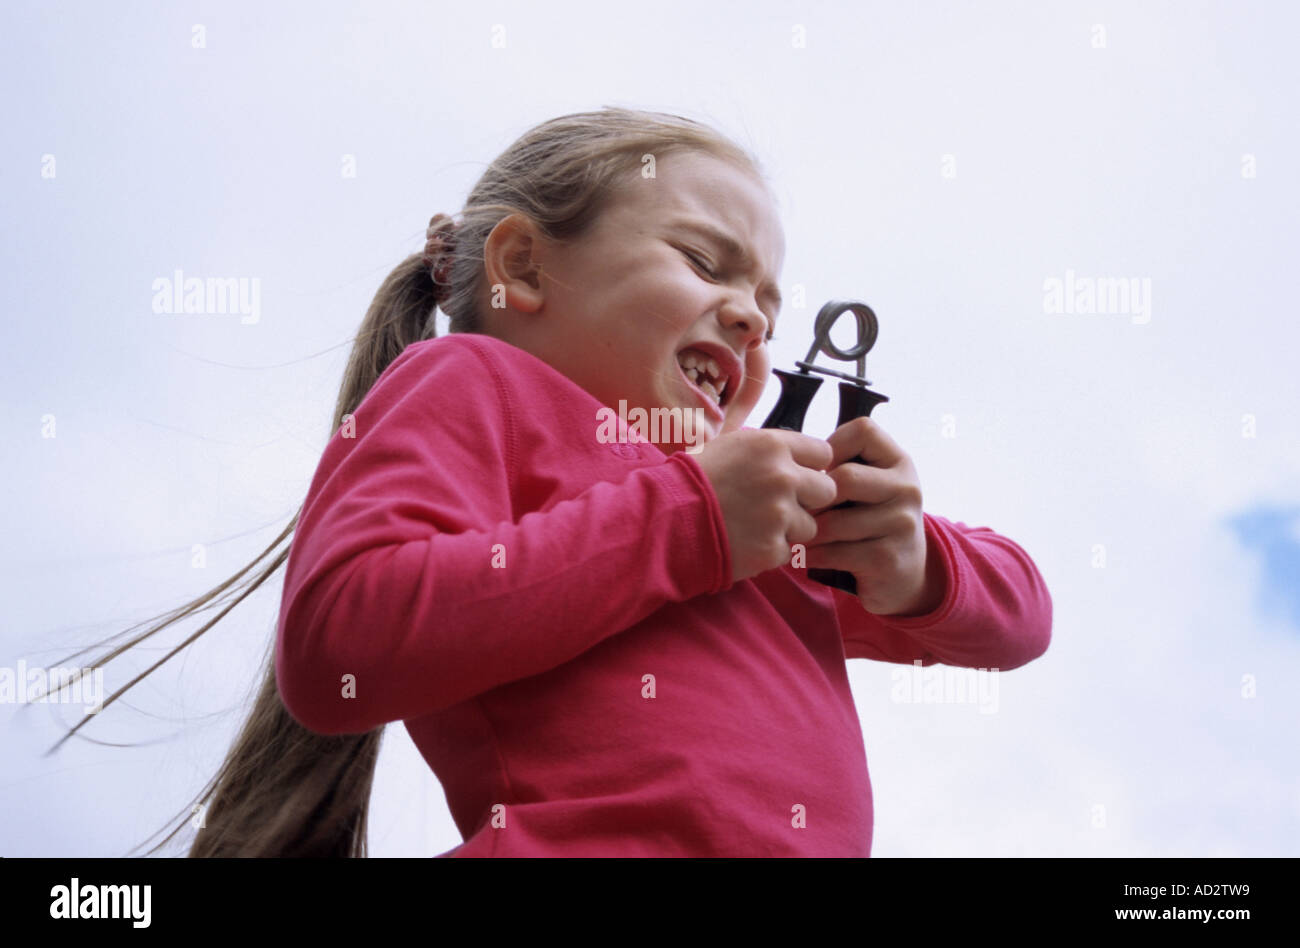 Young Girl Getting To Grips With Hand Strengthener - Stock Image